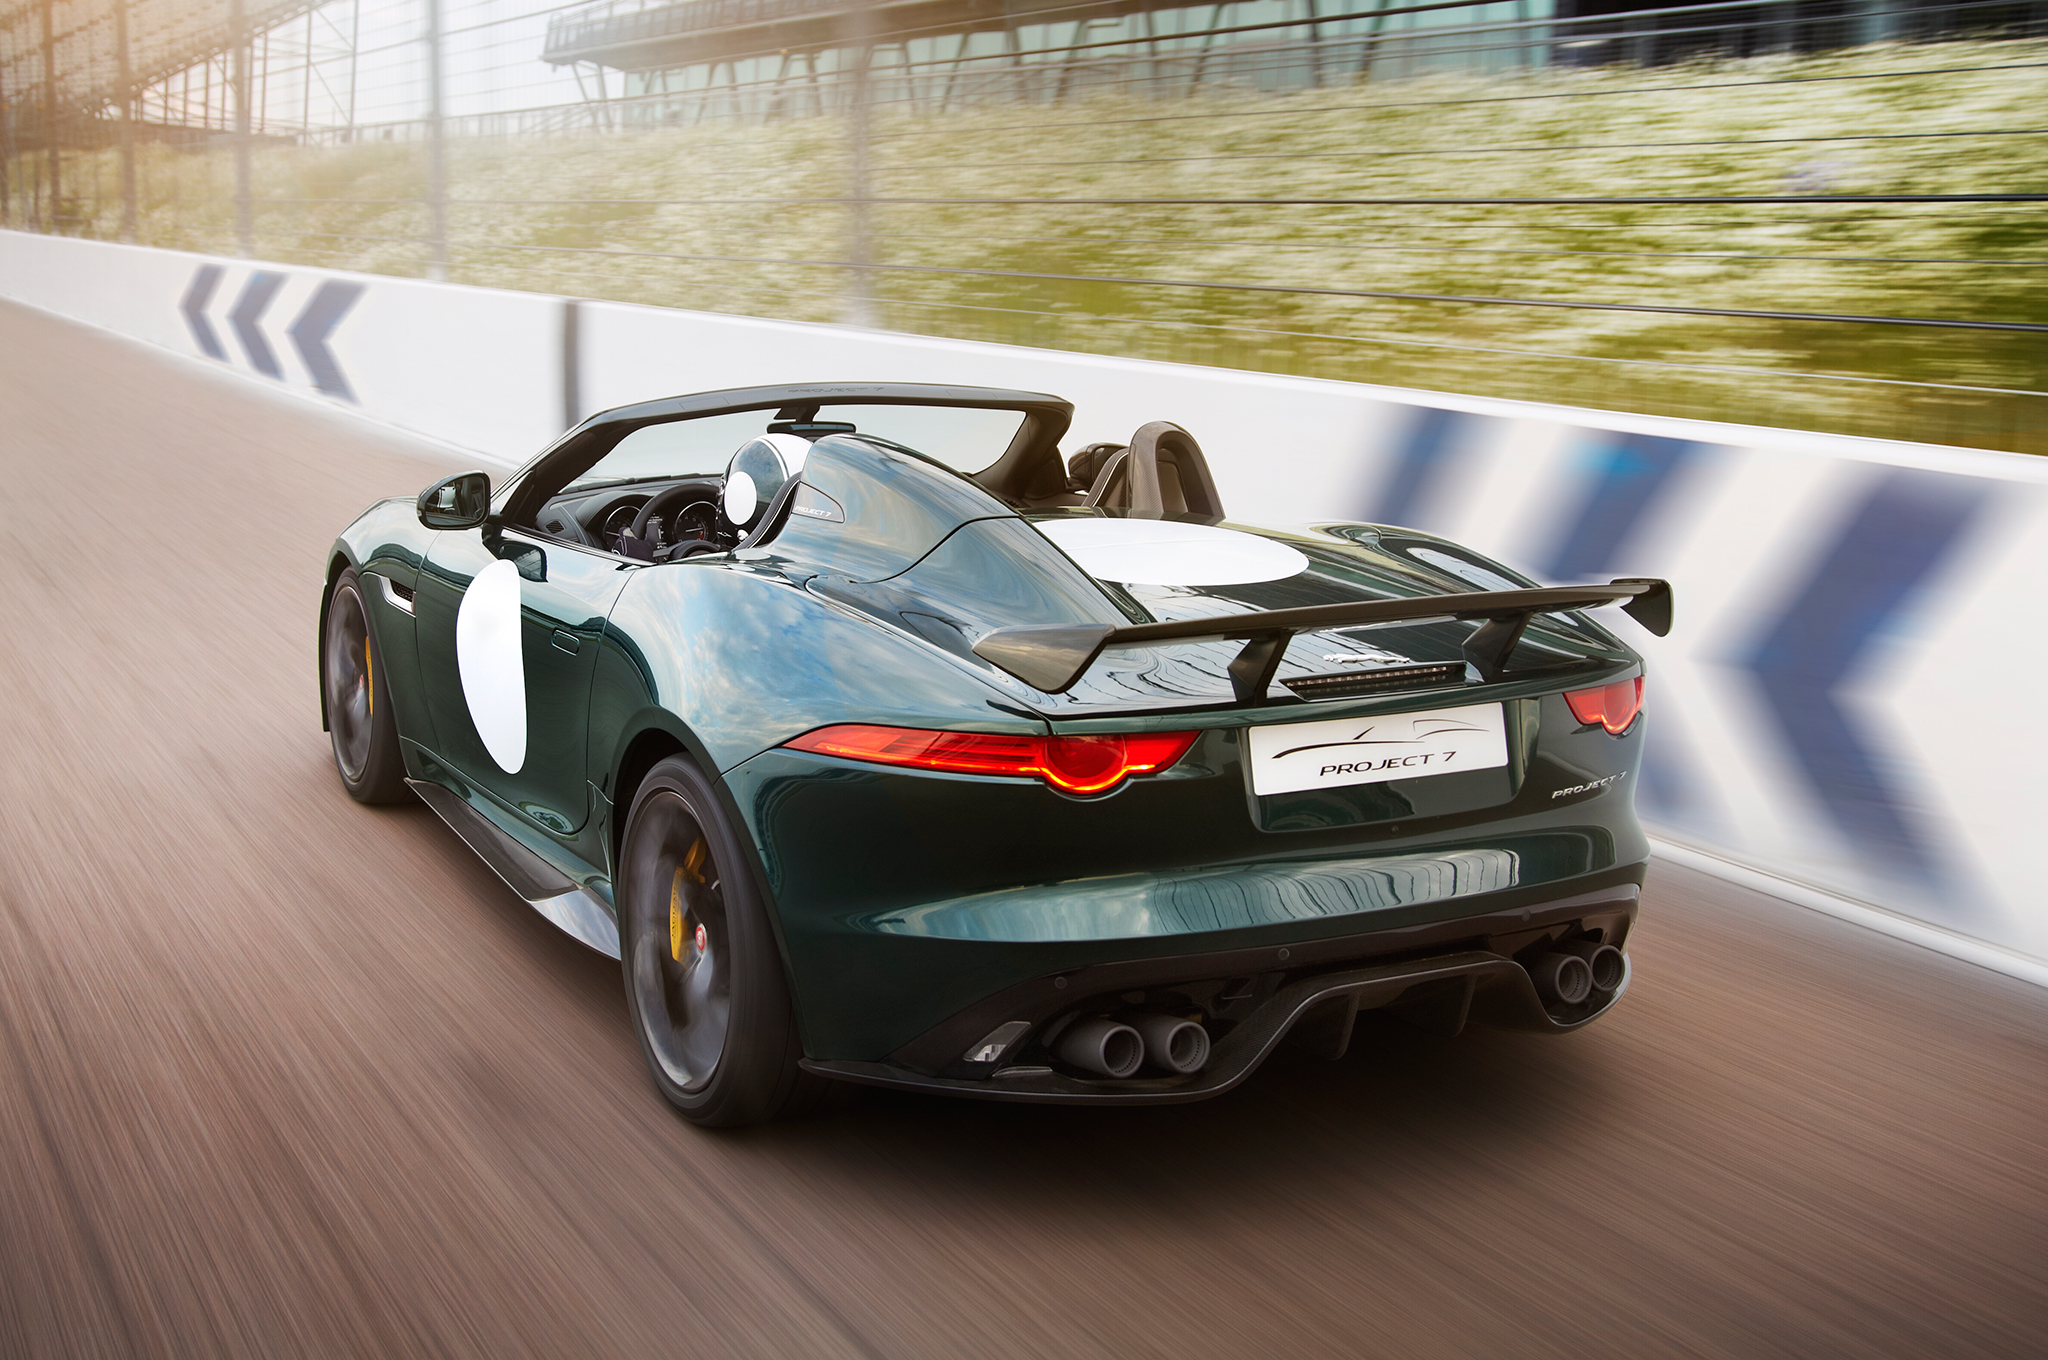 hight resolution of 567 hp jaguar f type project 7 production model revealed